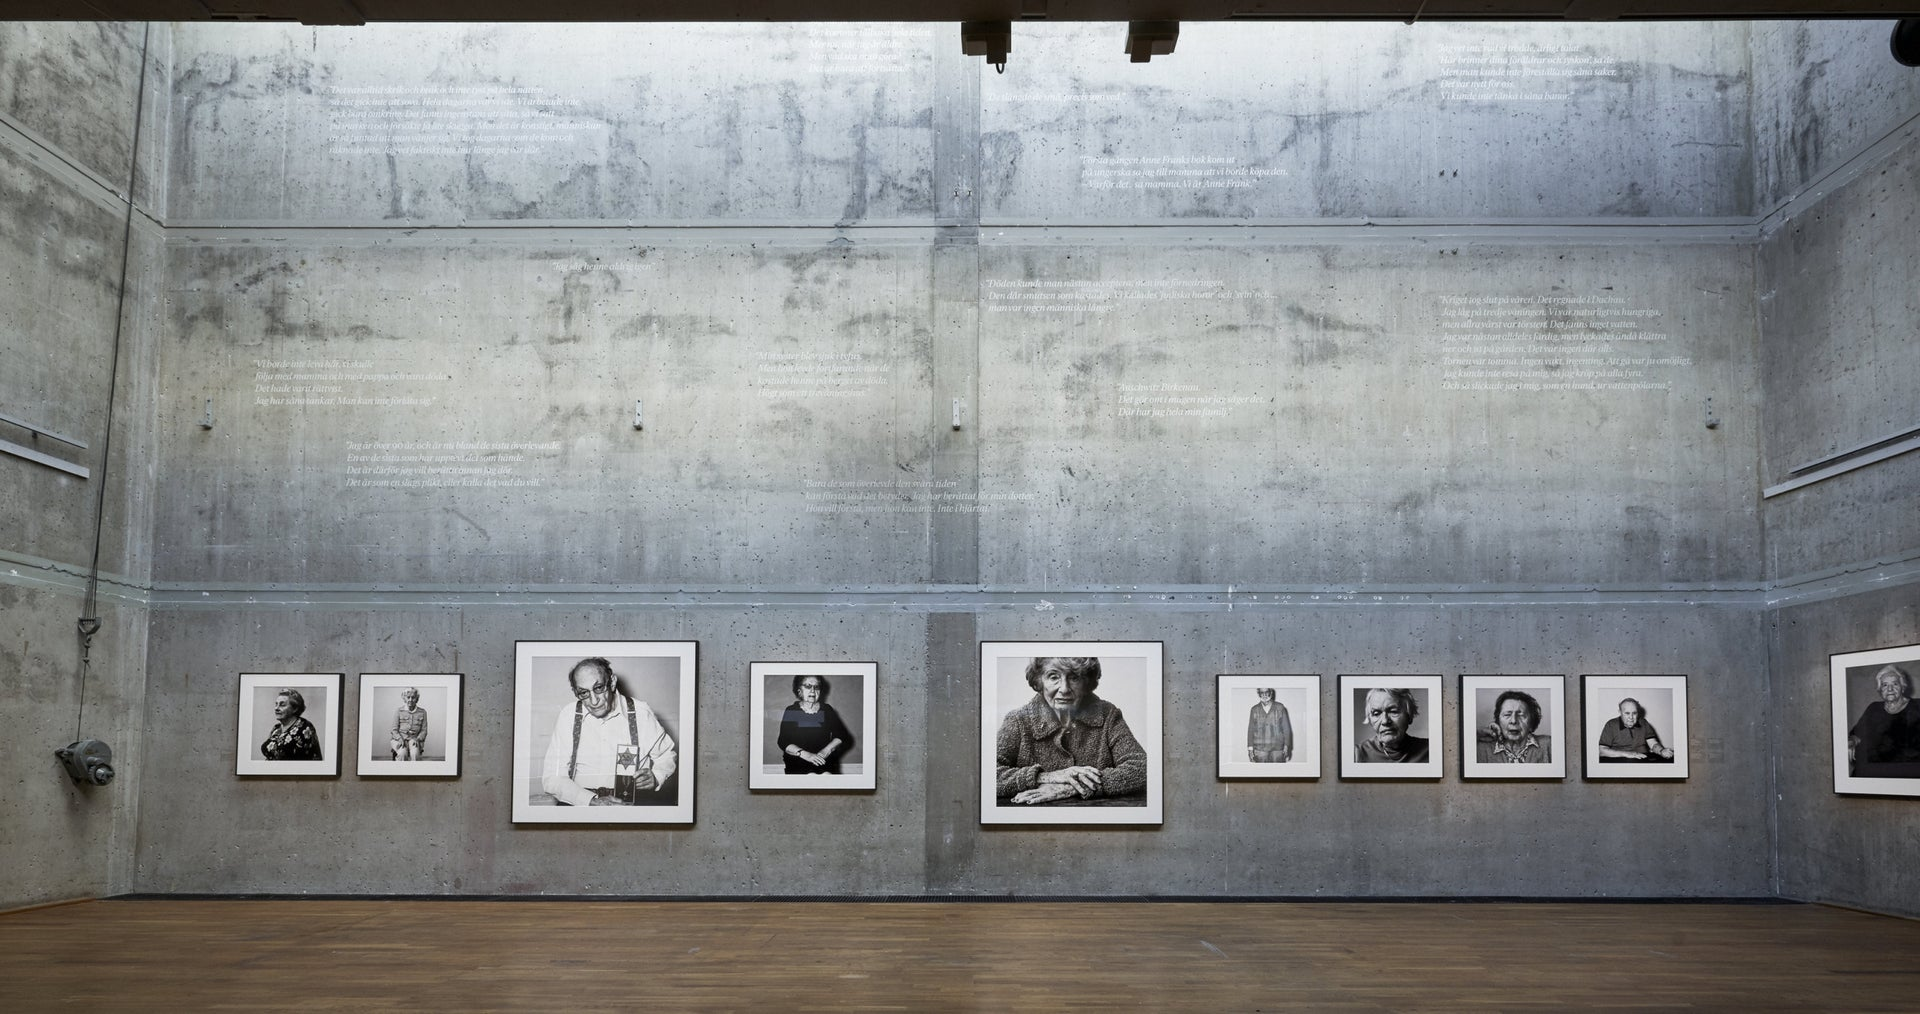 """Portraits in the """"Witnesses"""" exhibition, at the Kulturhuset Stadsteatern in Stockholm, Sweden."""